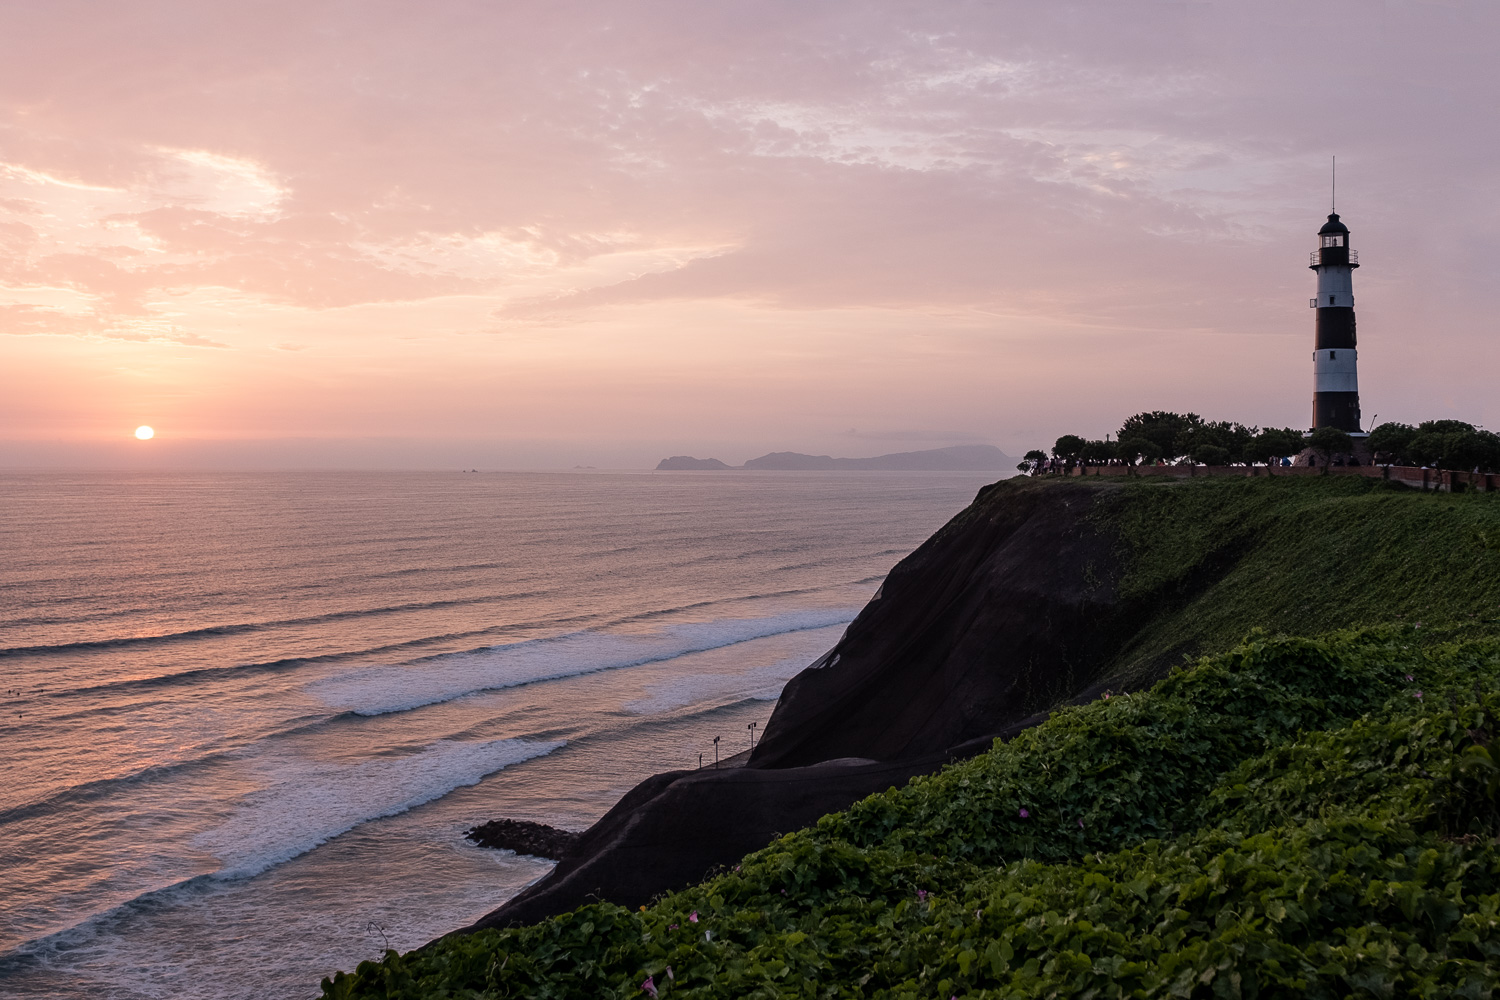 """The Lighthouse in Lima, Peru. Travel photography and guide by © Natasha Lequepeys for """"And Then I Met Yoko"""". #photoblog #travelblog #travelperu"""